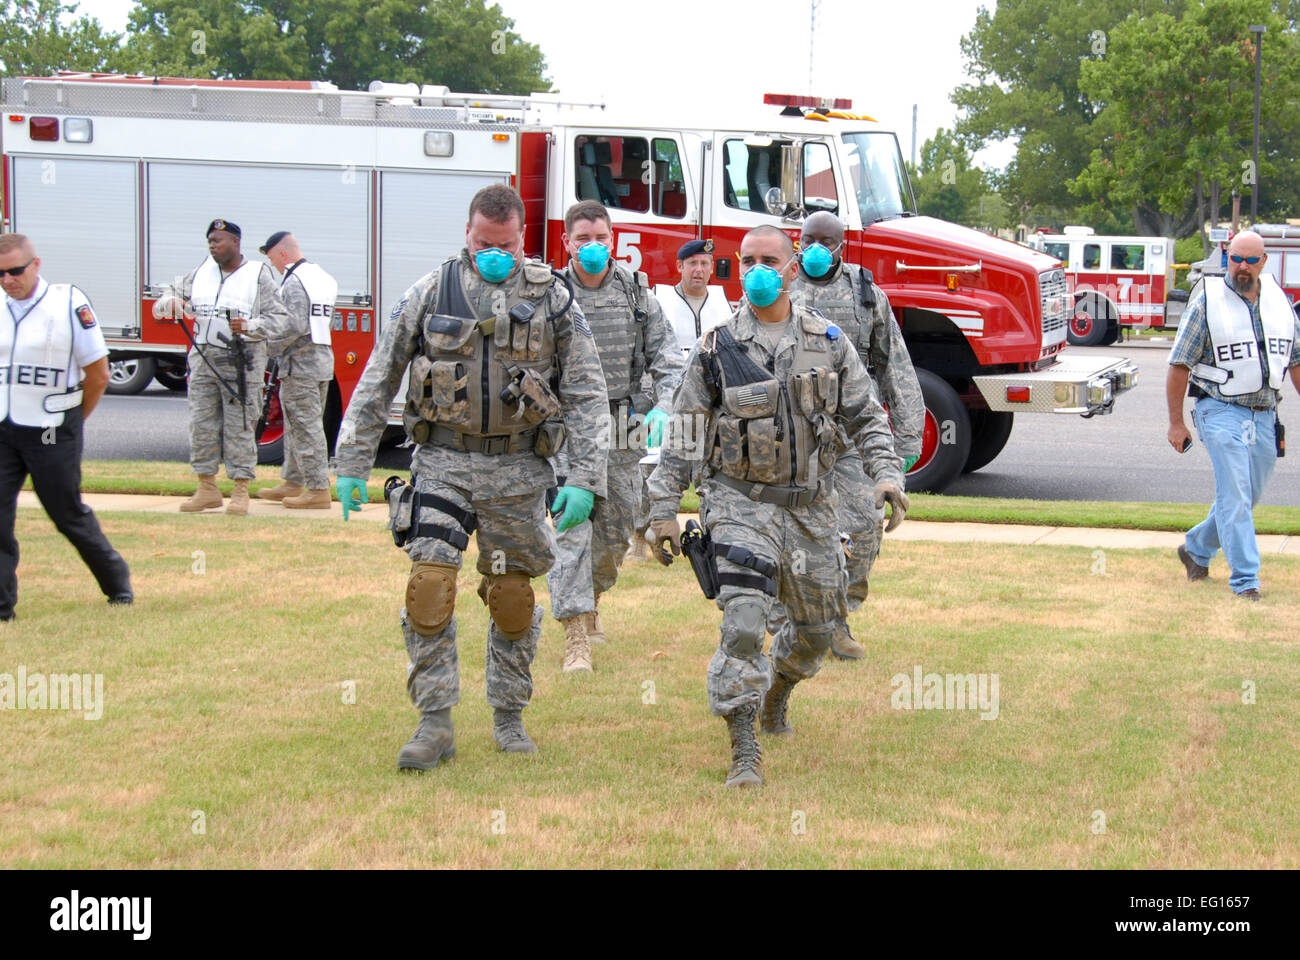 Personnel from the 42nd Air Base Wing's security forces squadron, fire department, flight medical response team - Stock Image